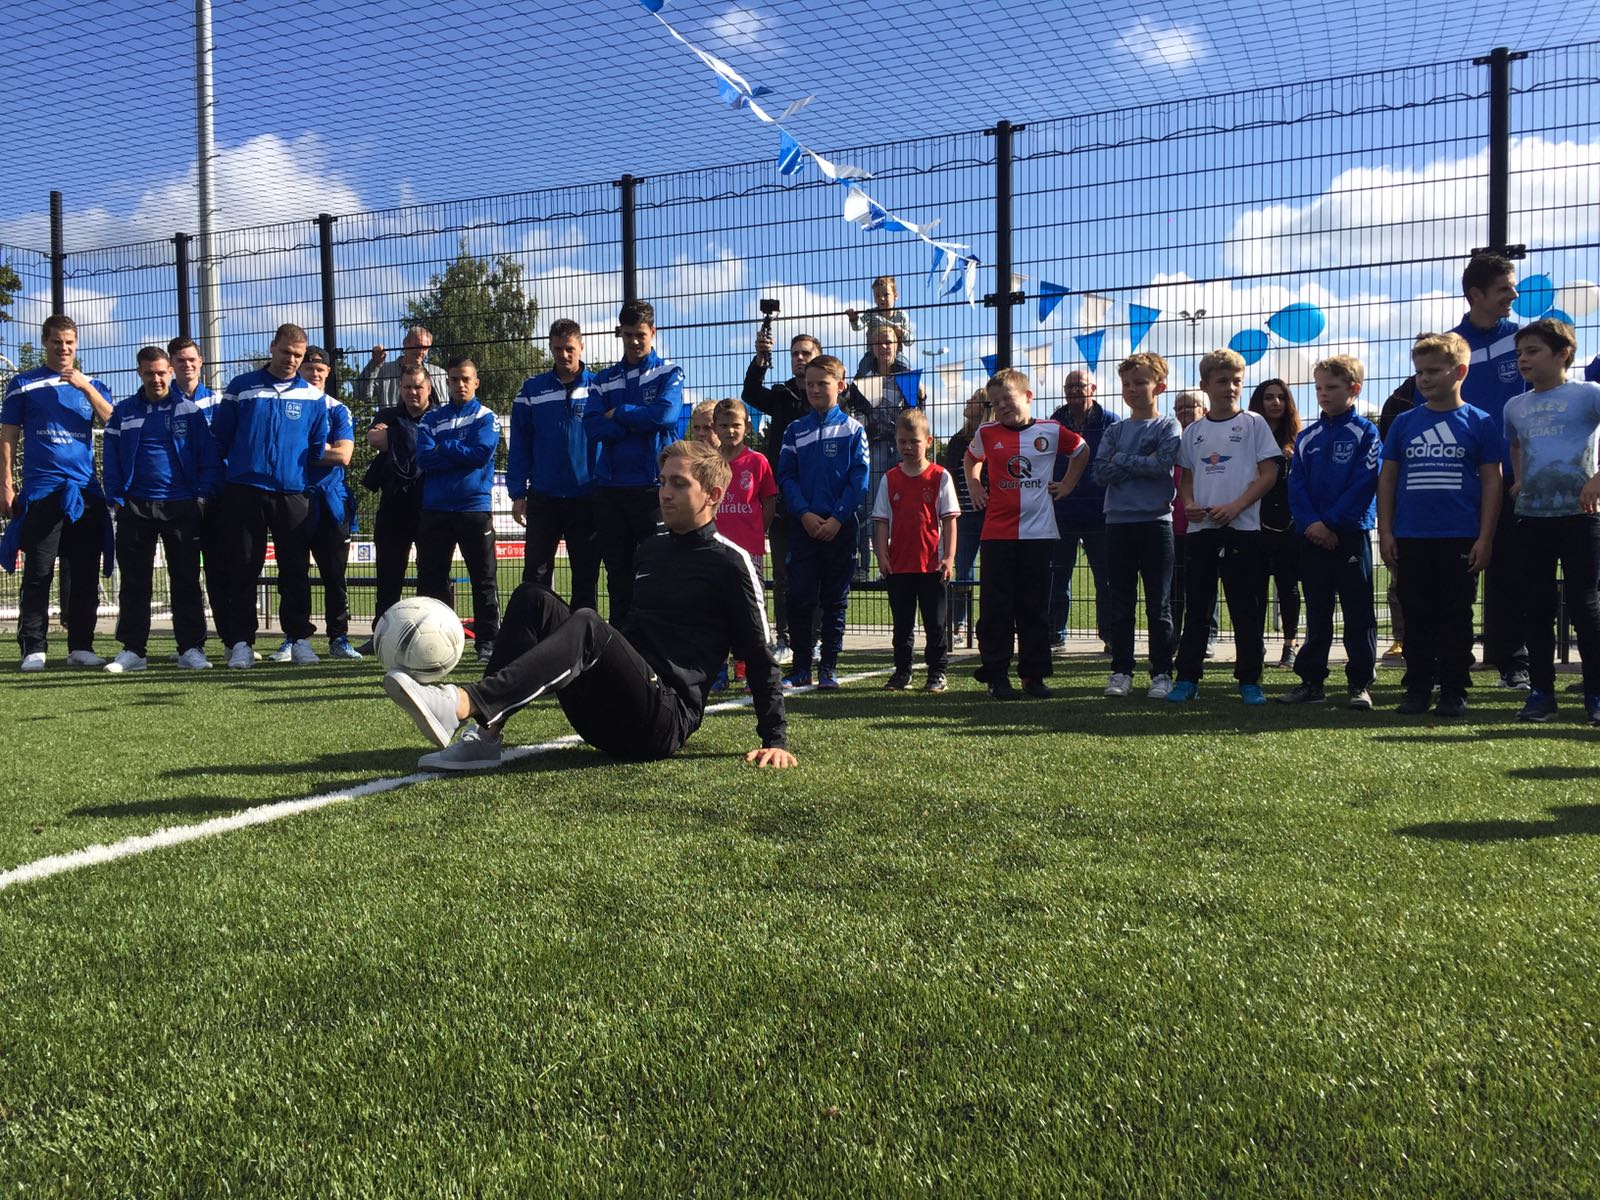 Spectaculaire opening voetbalkooi - Elburger SC